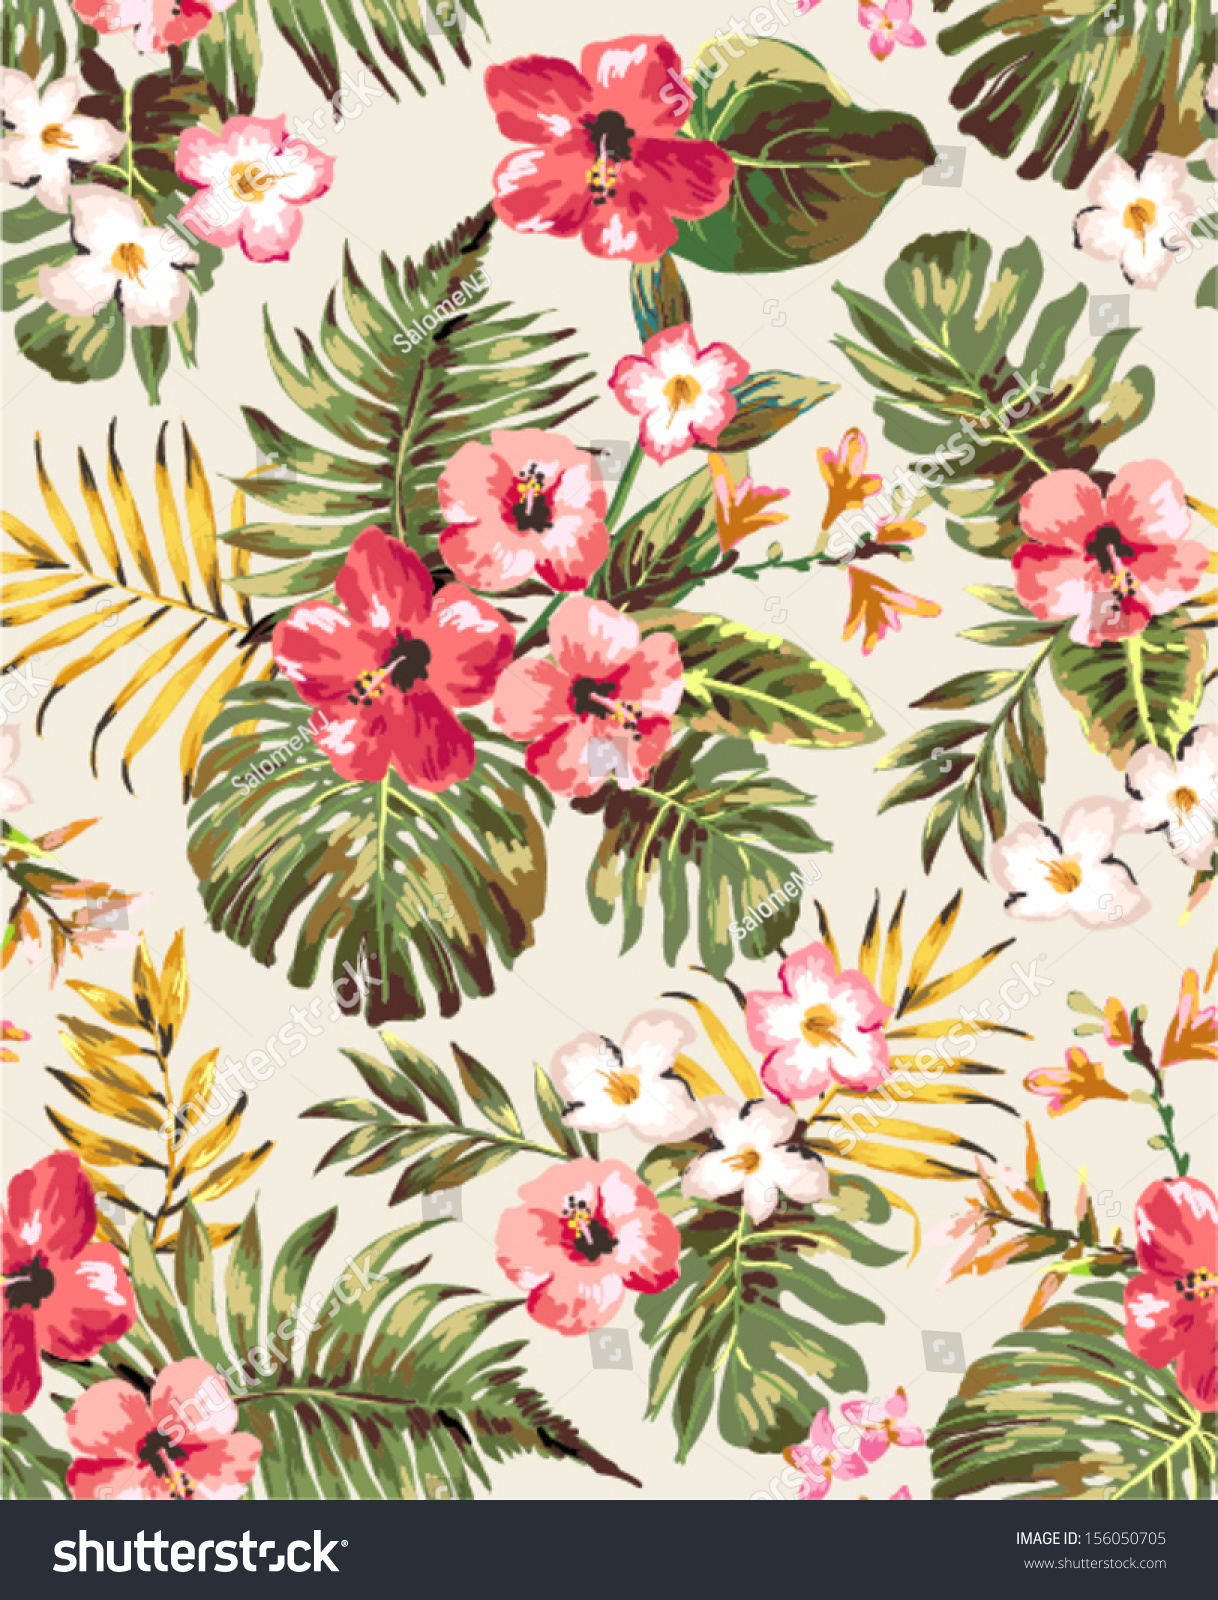 Hand Draw Tropical Flower,Blossom Cluster Seamless Pattern